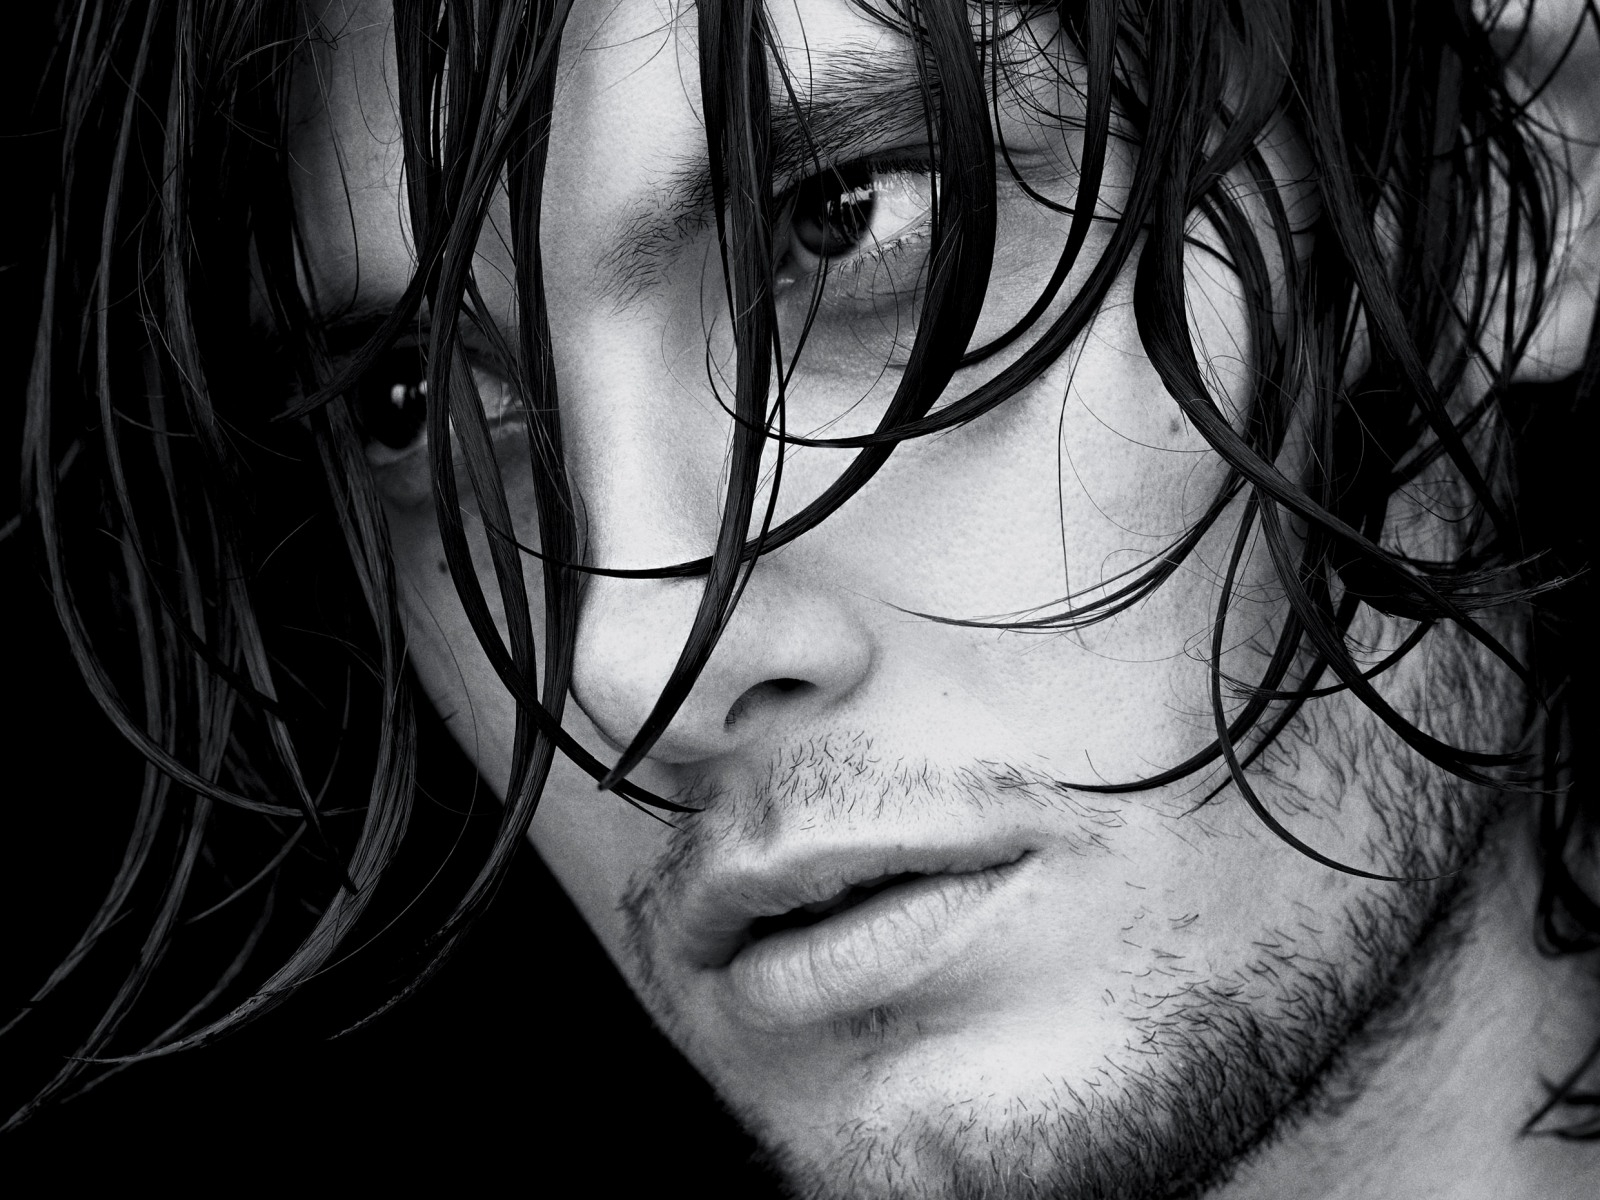 http://2.bp.blogspot.com/-nJgeUhuL_Gc/UNs_QO3_B7I/AAAAAAAAANg/ewa6N-HY5VE/s1600/ben_barnes_actor_boy_young_person_black_white_hair_wet_look_18686_1600x1200.jpg